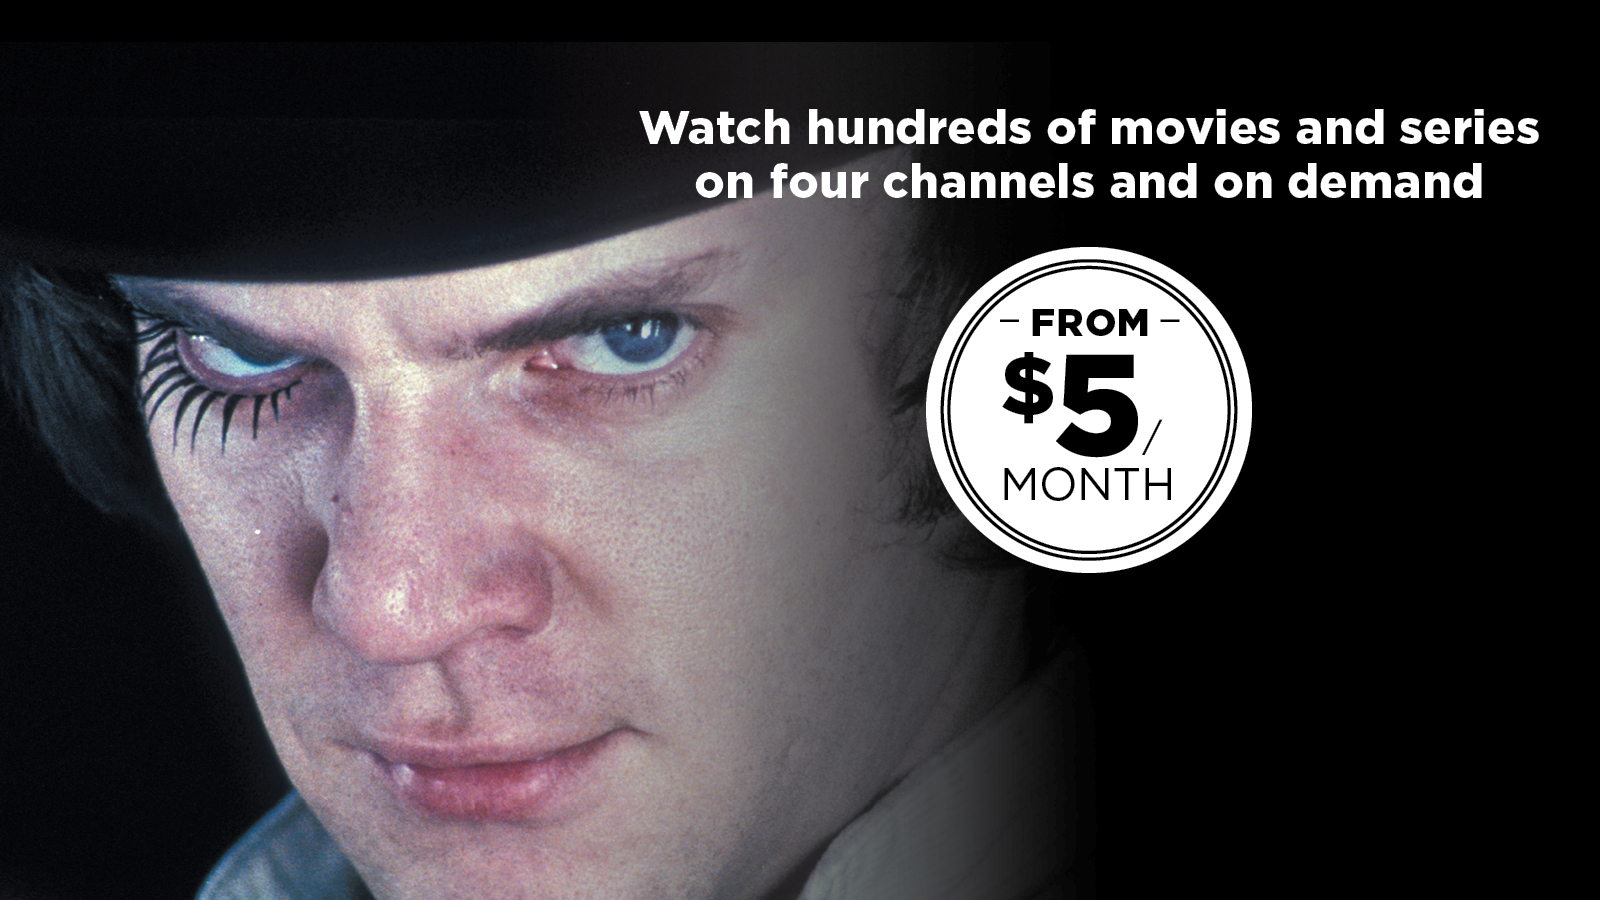 Watch hundreds of movies and series on four channel and on demand from $5 a month